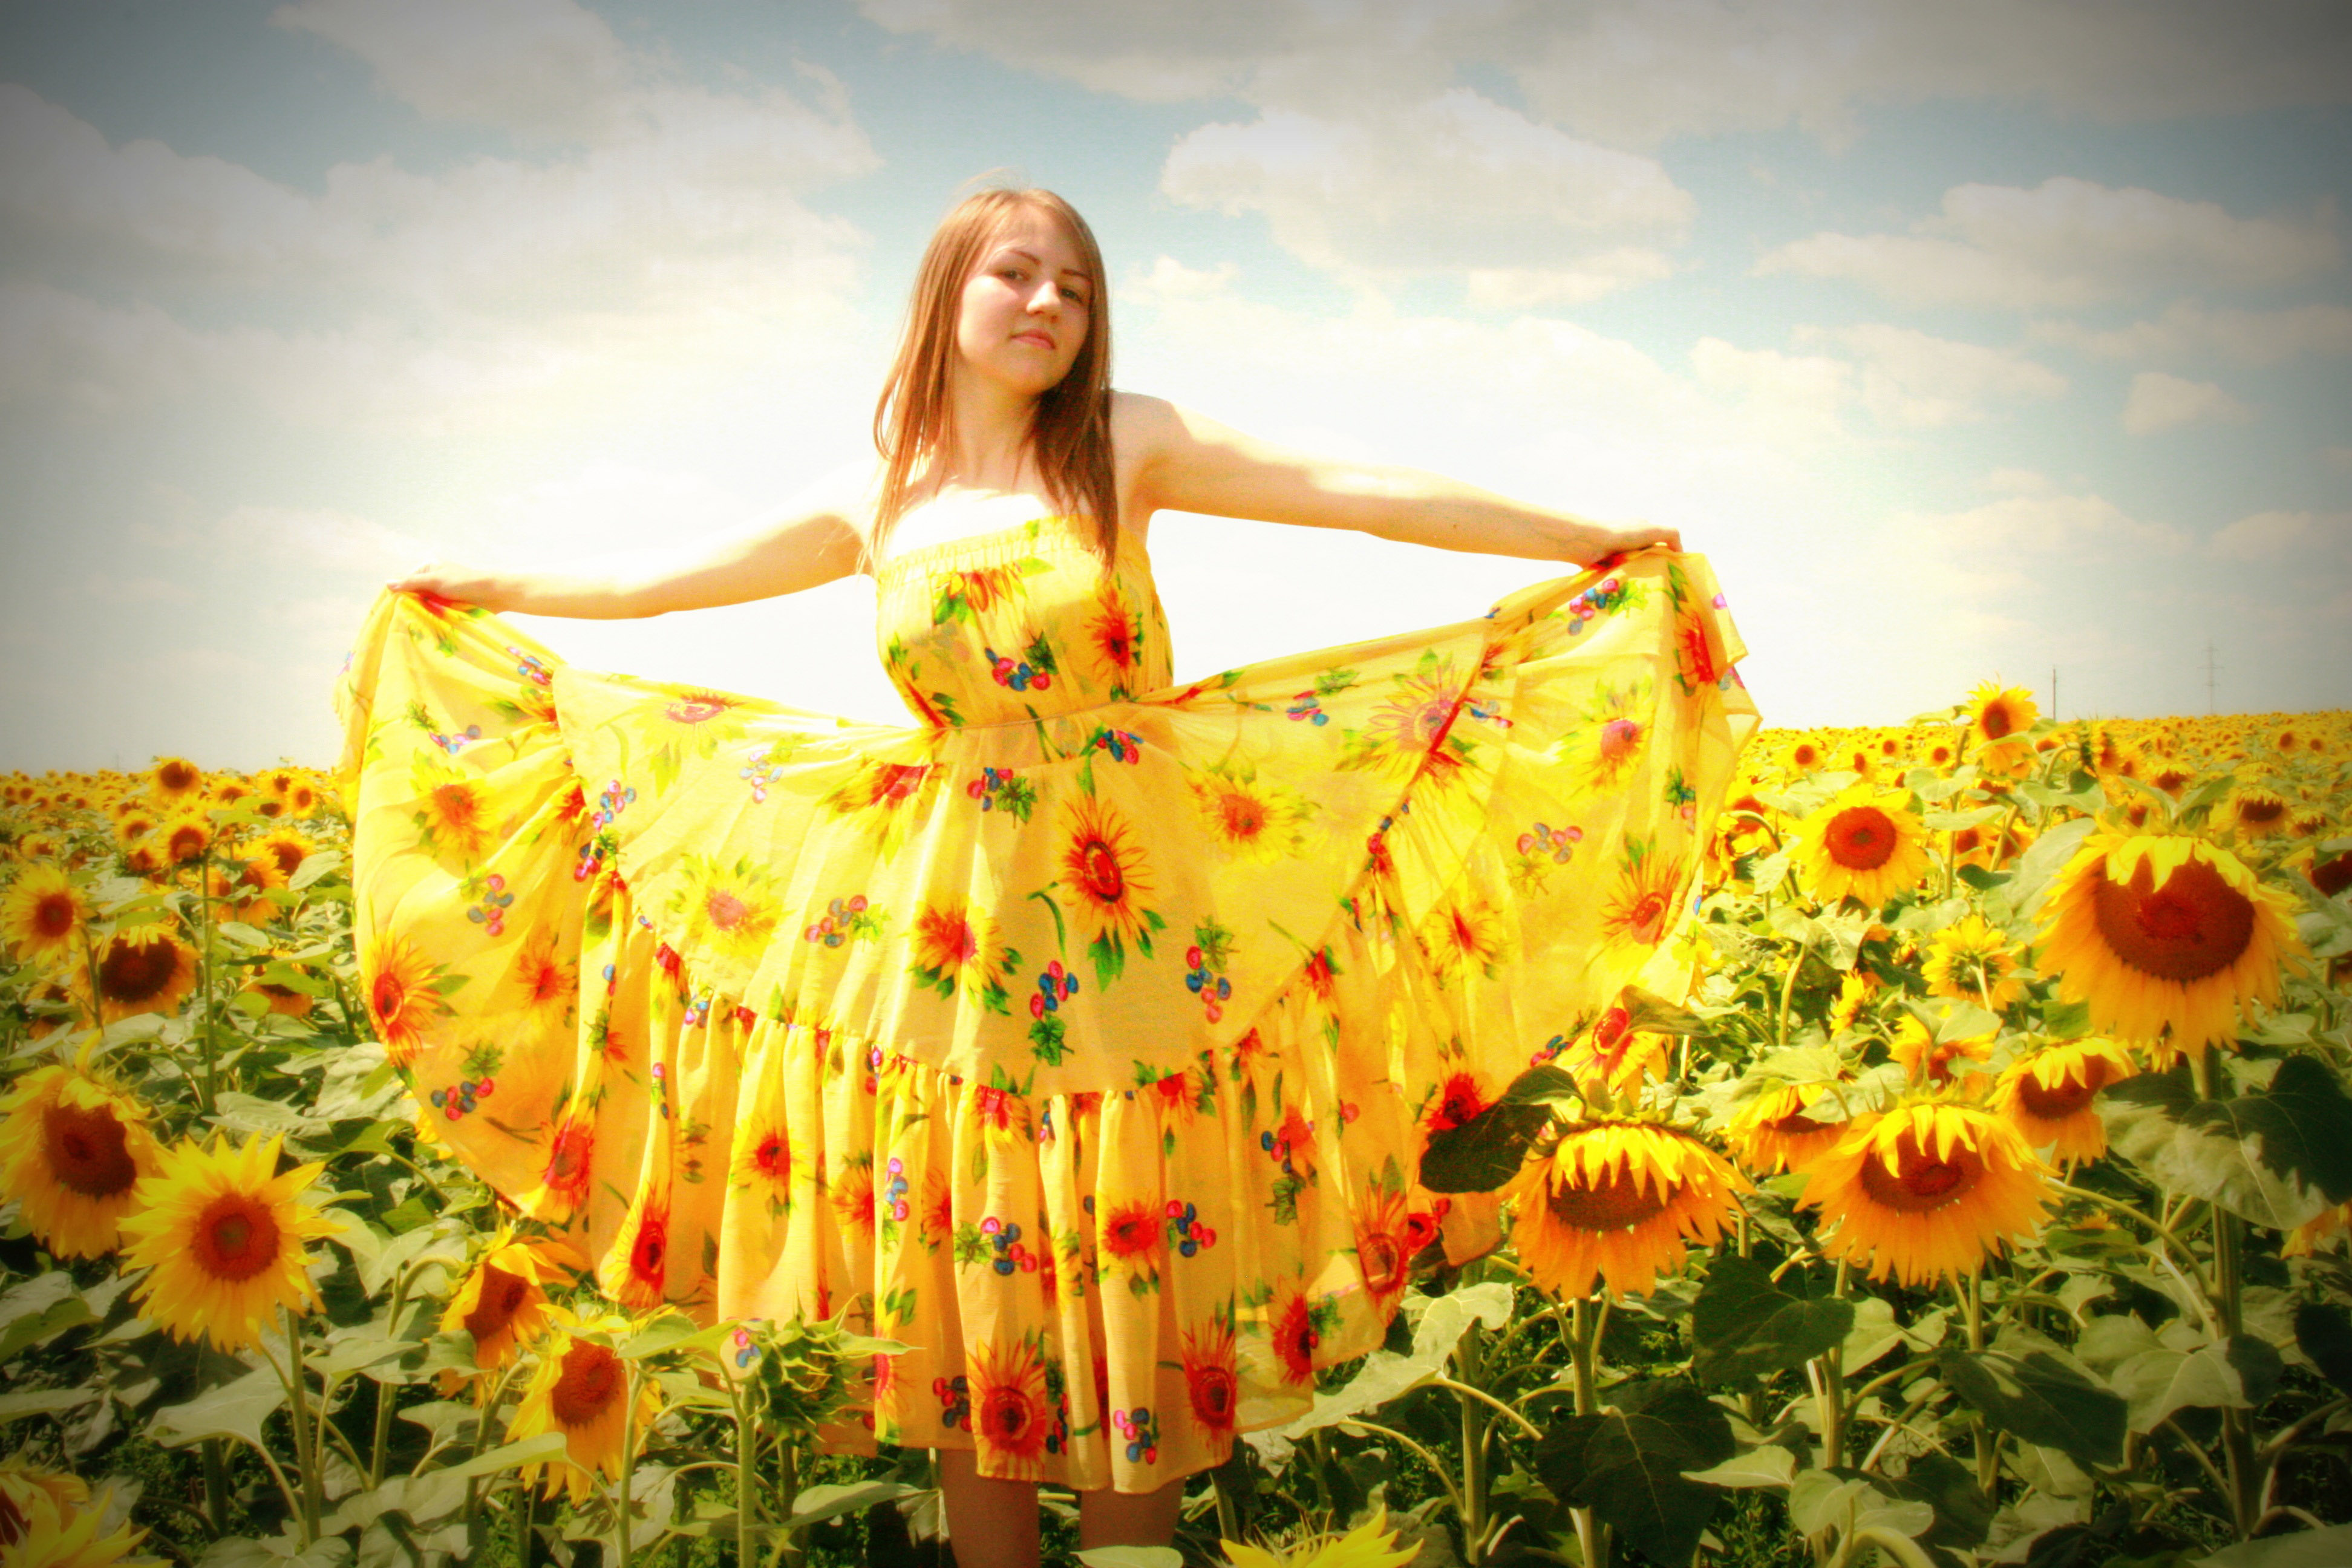 Girl In Sunflower Dress And Sunflower Field Image Free Stock Photo